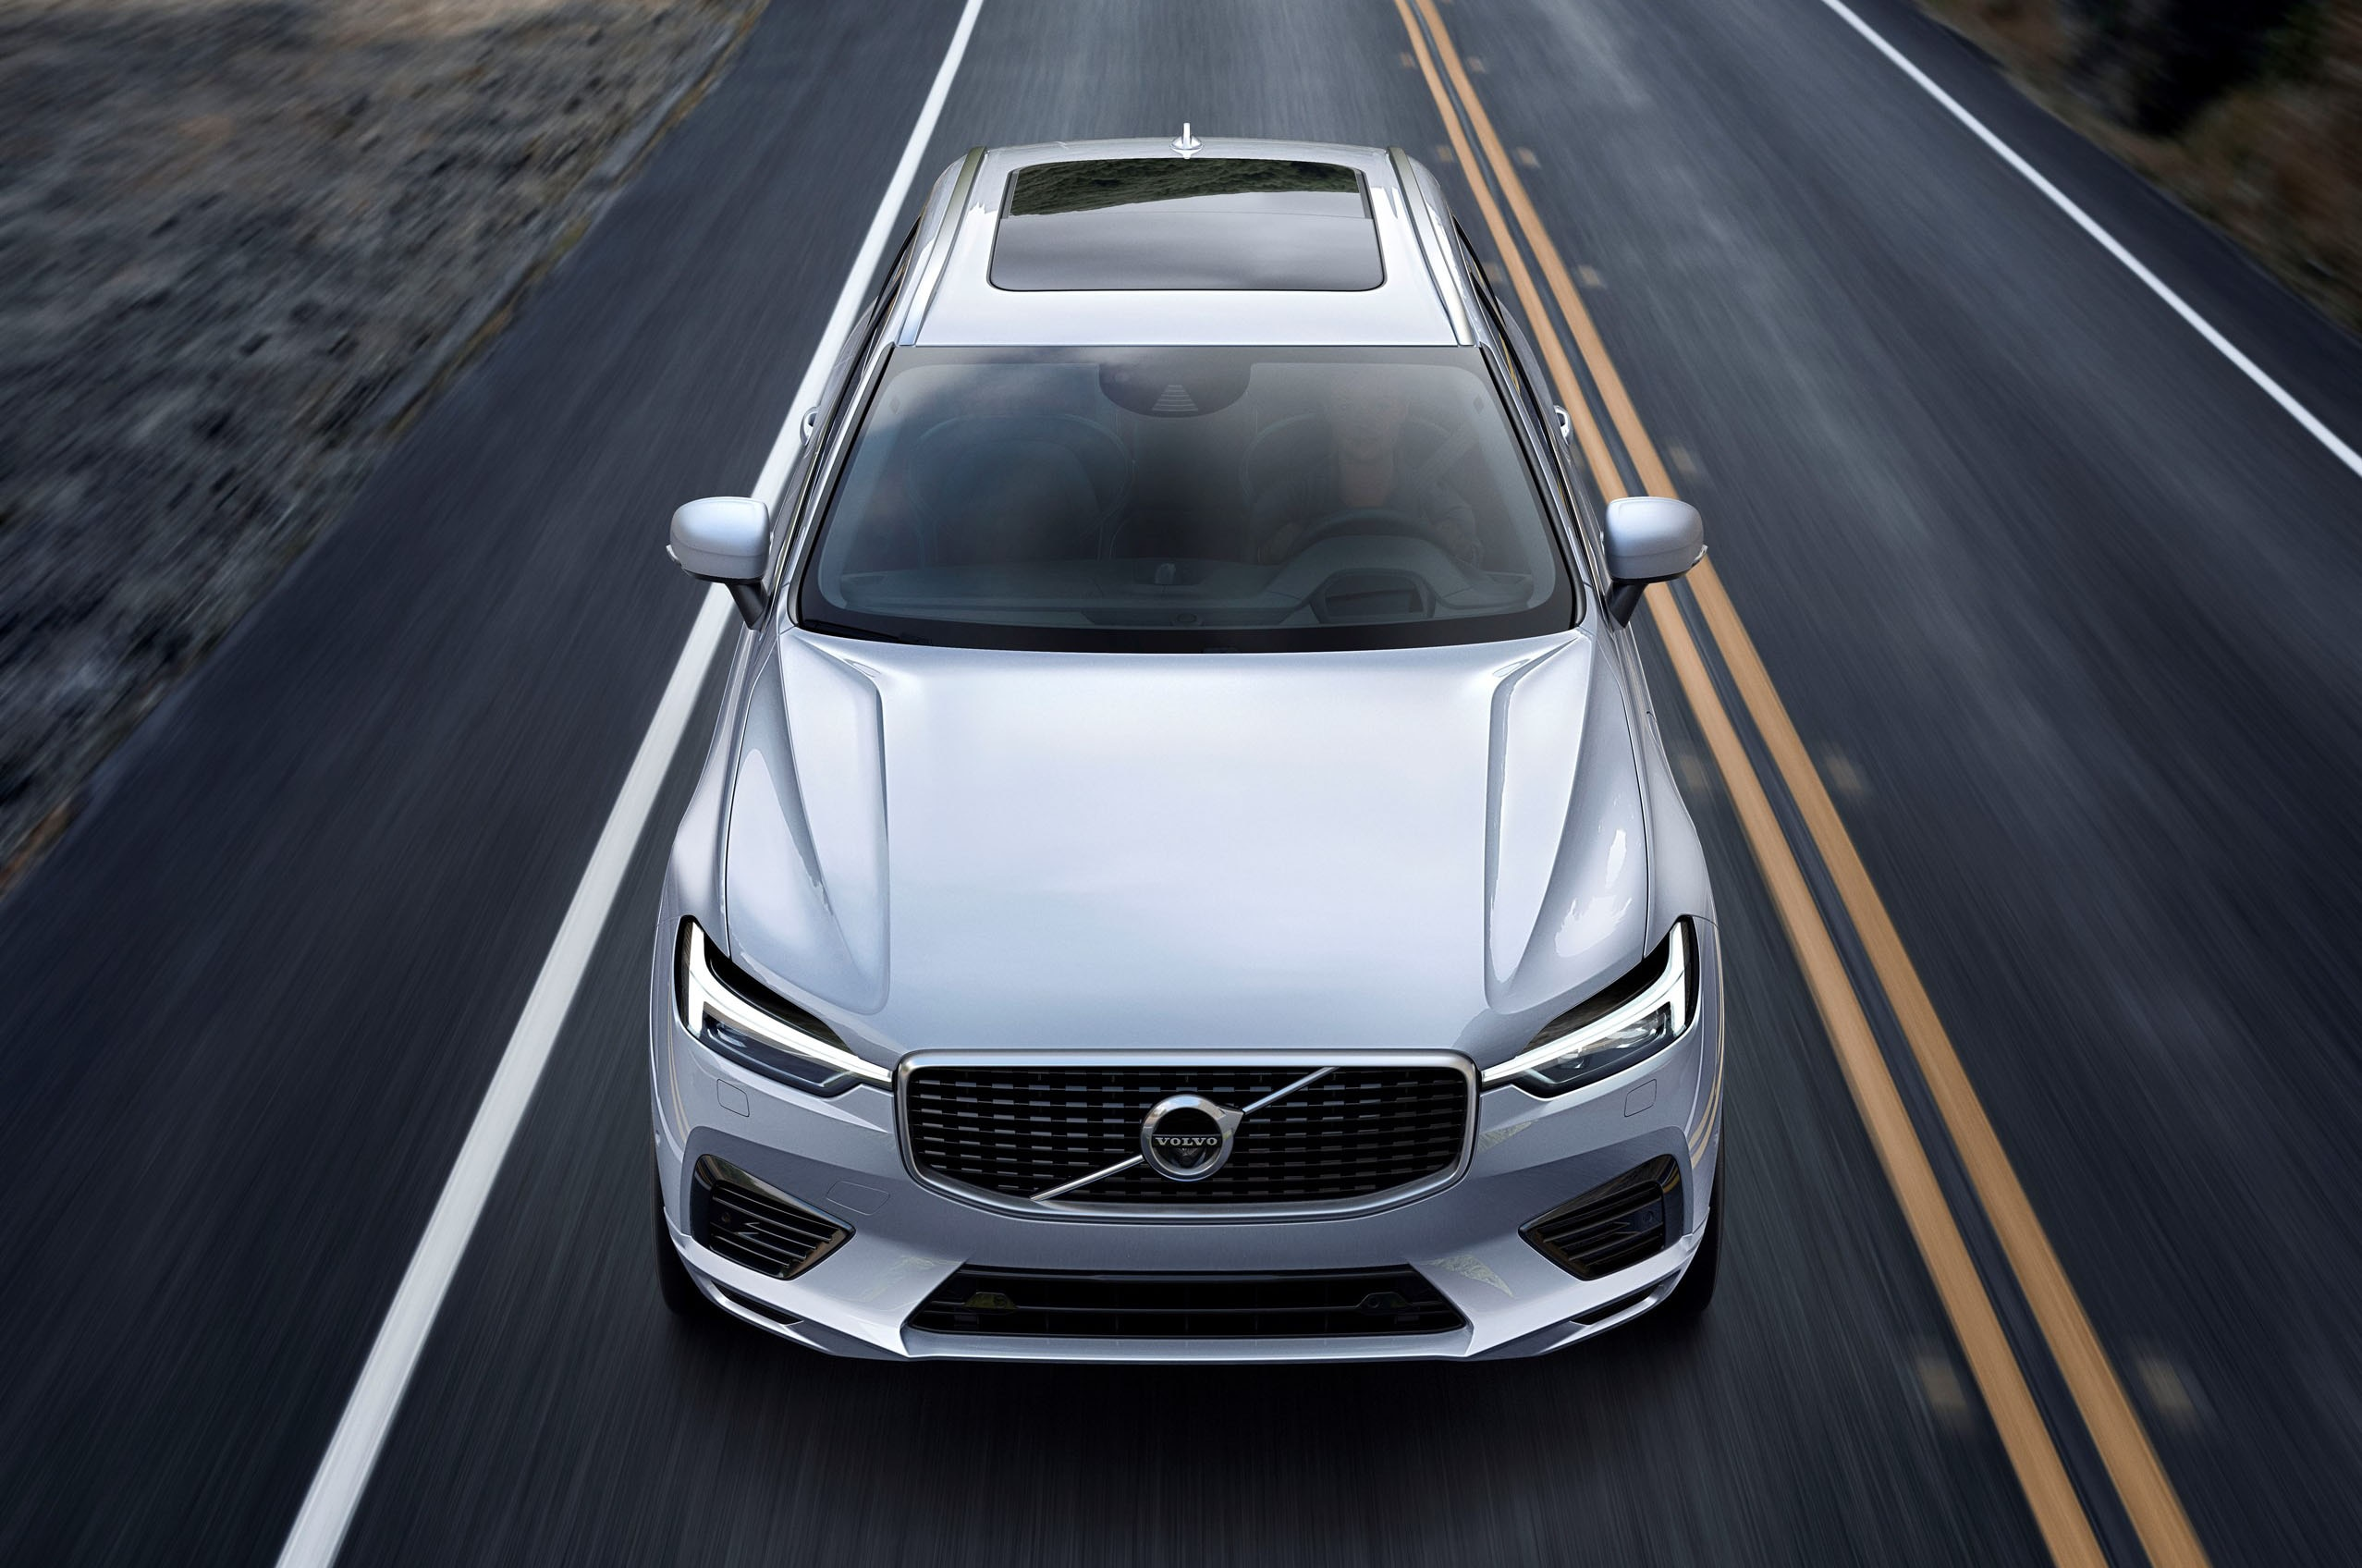 2018 volvo new xc60. Simple Xc60 Show More In 2018 Volvo New Xc60